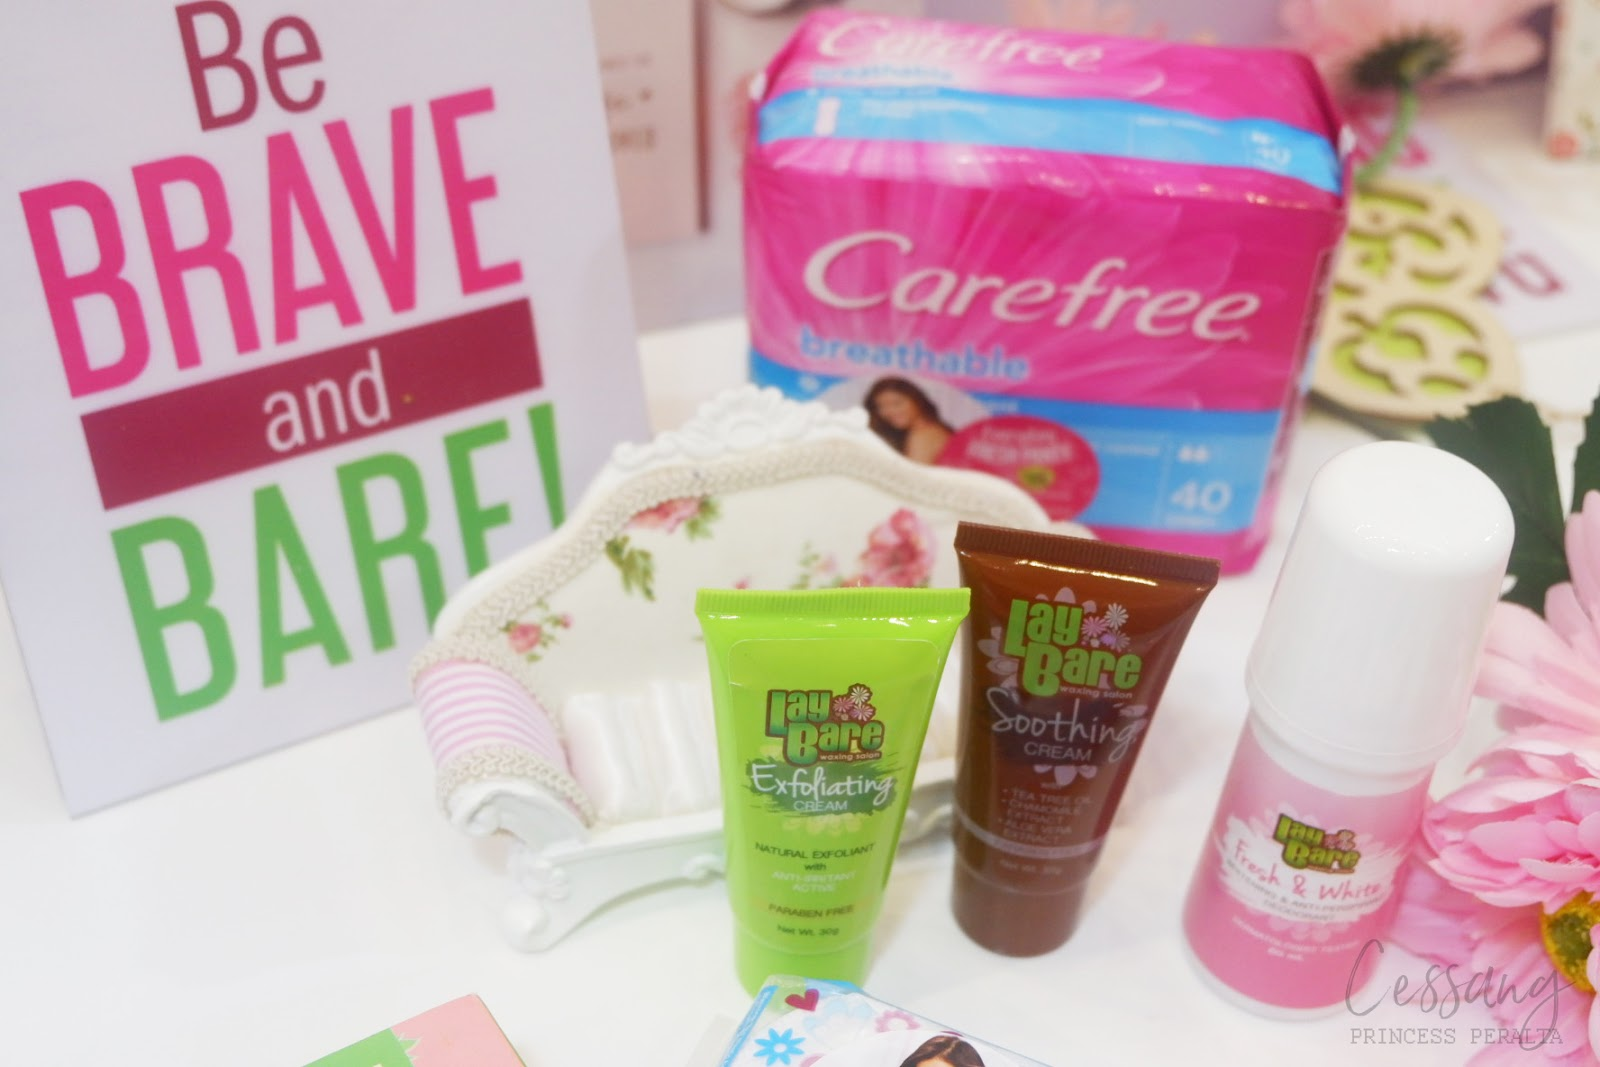 BARE IT ALL: INTIMATE BEAUTY SECRETS REVEALED WITH CAREFREE X LAY BARE